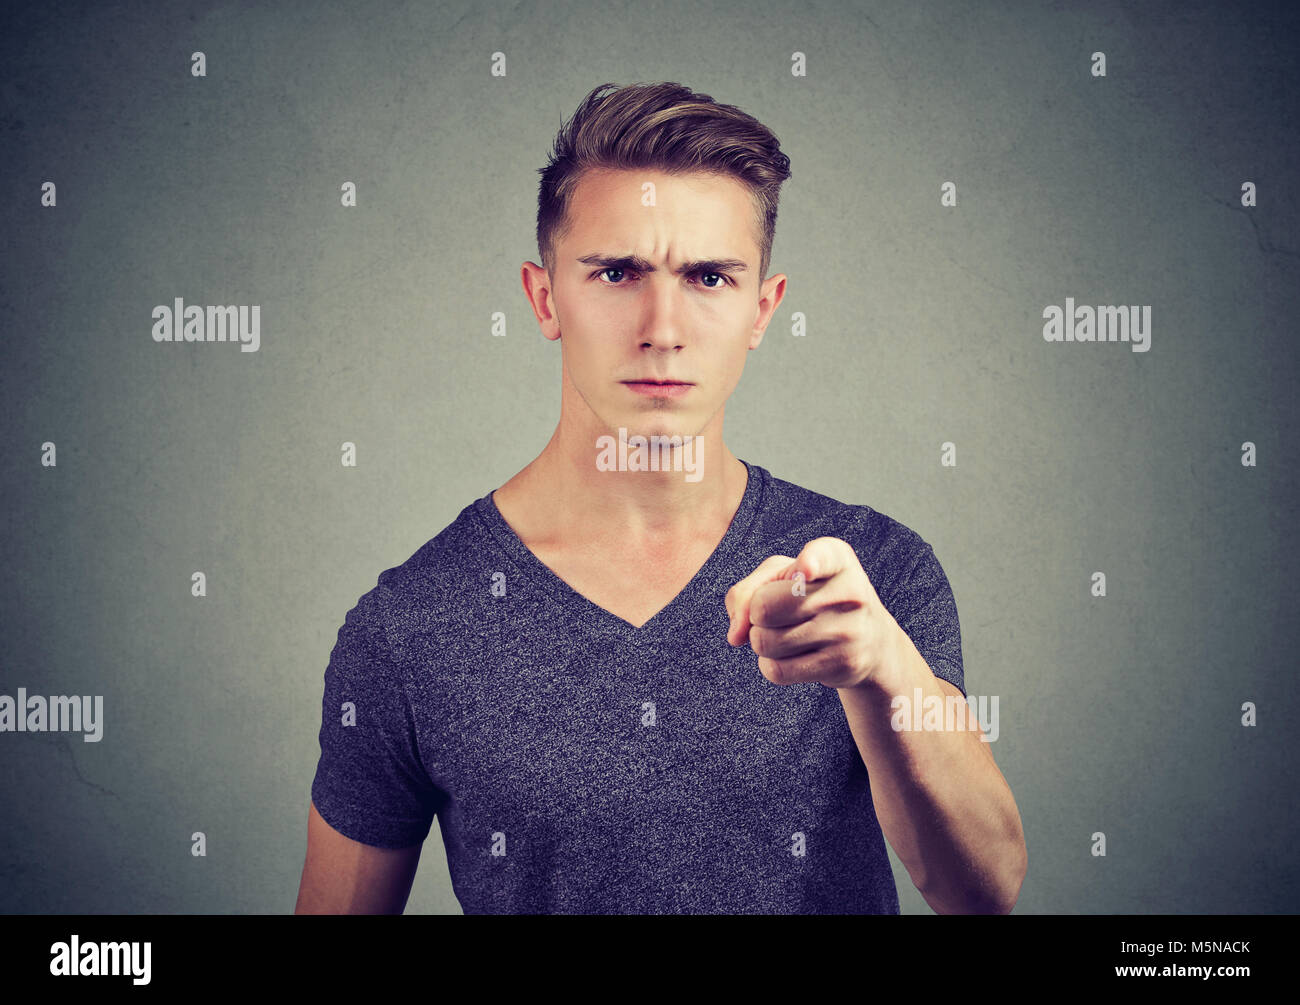 Young casual man pointing at camera with feelings of anger and accusation. - Stock Image